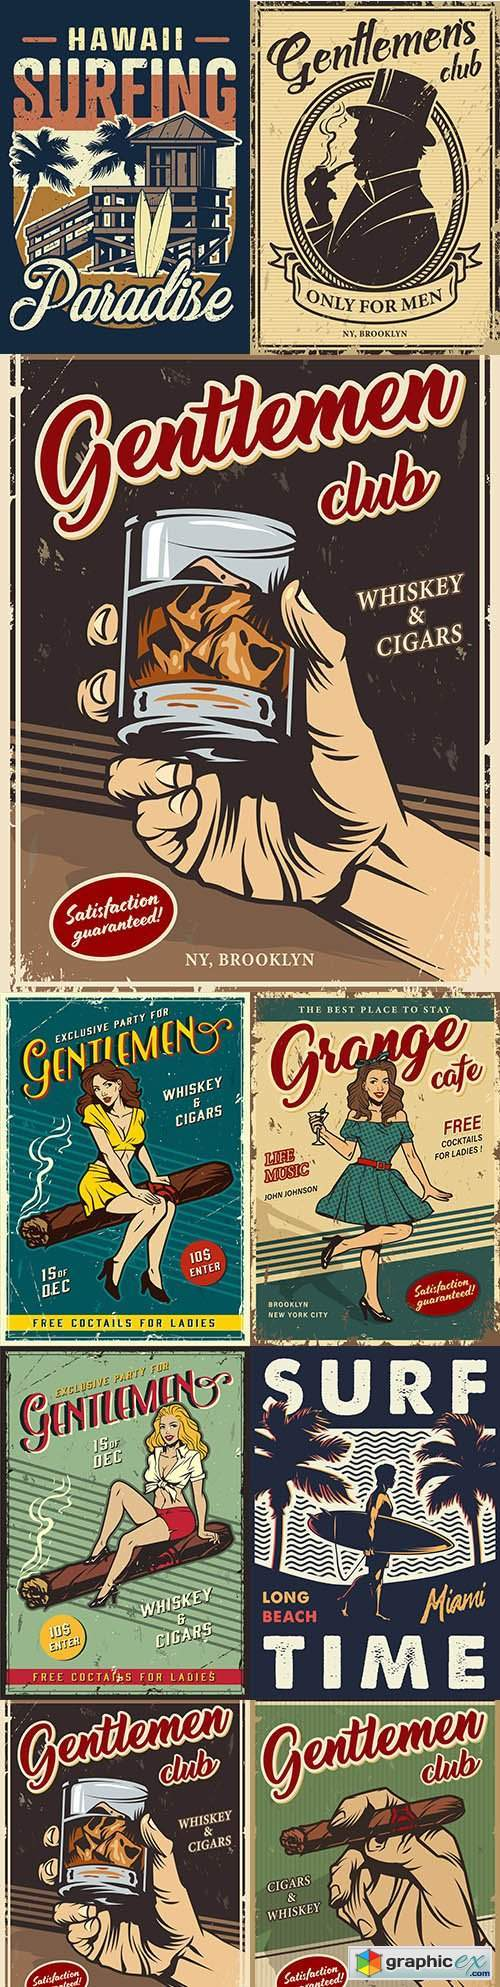 Vintage gentleman club advertising template